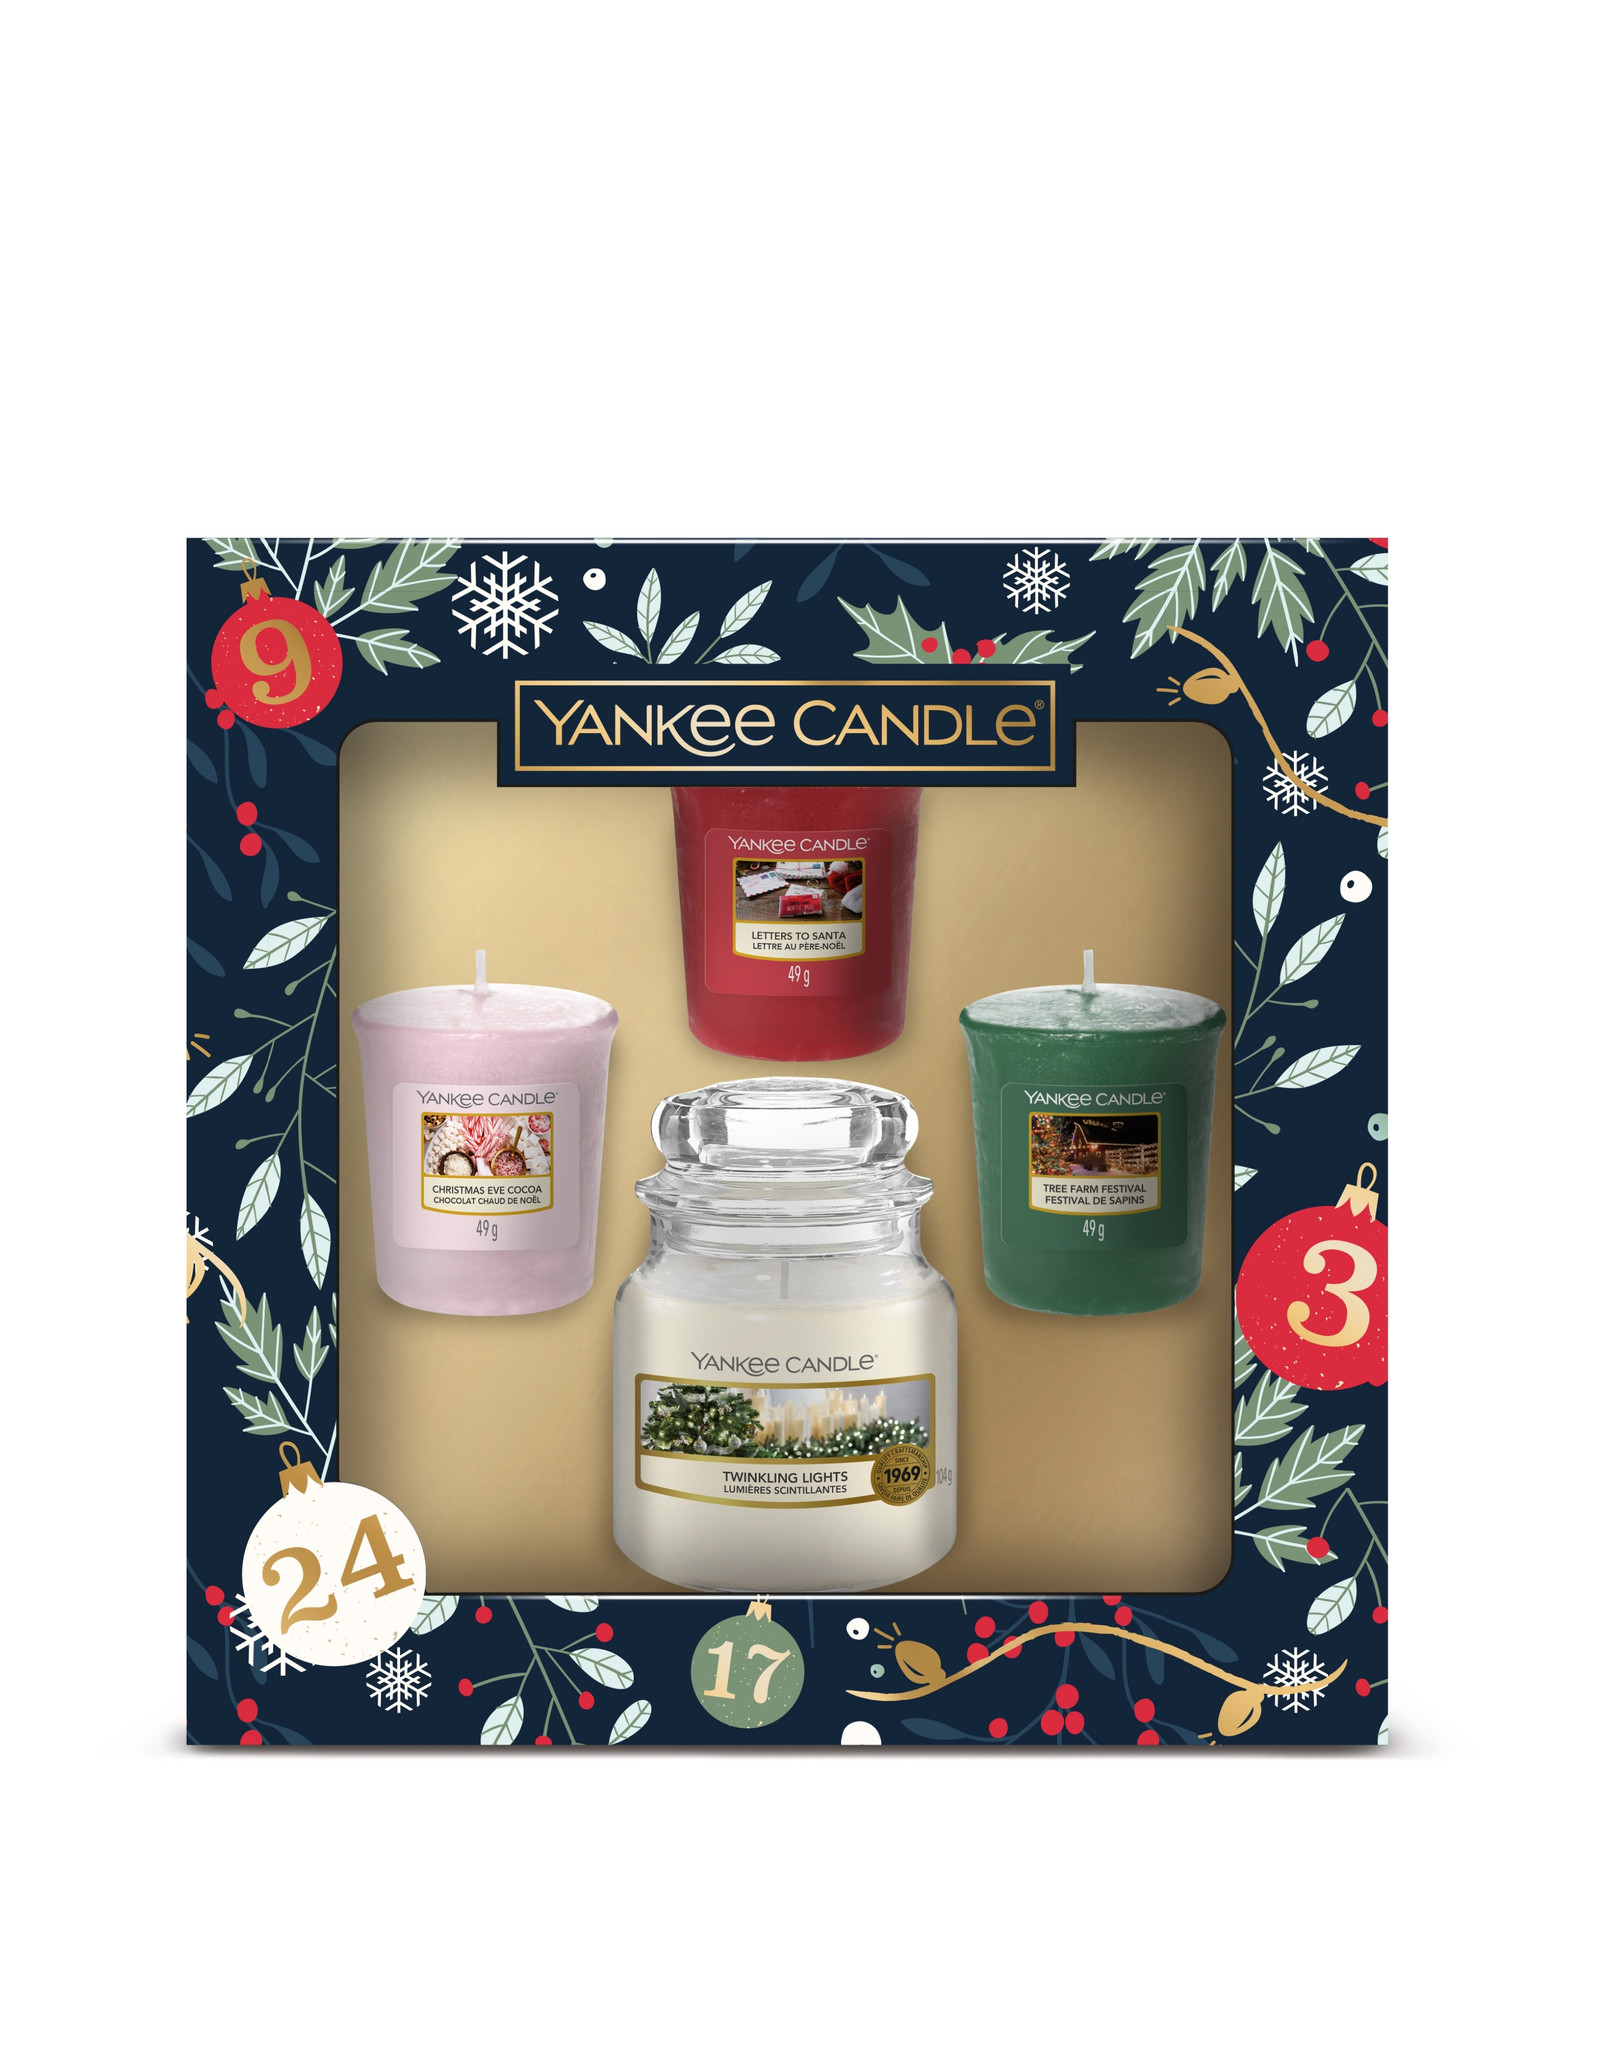 Yankee Candle Countdown to Christmas - Small Jar & Votives Giftset